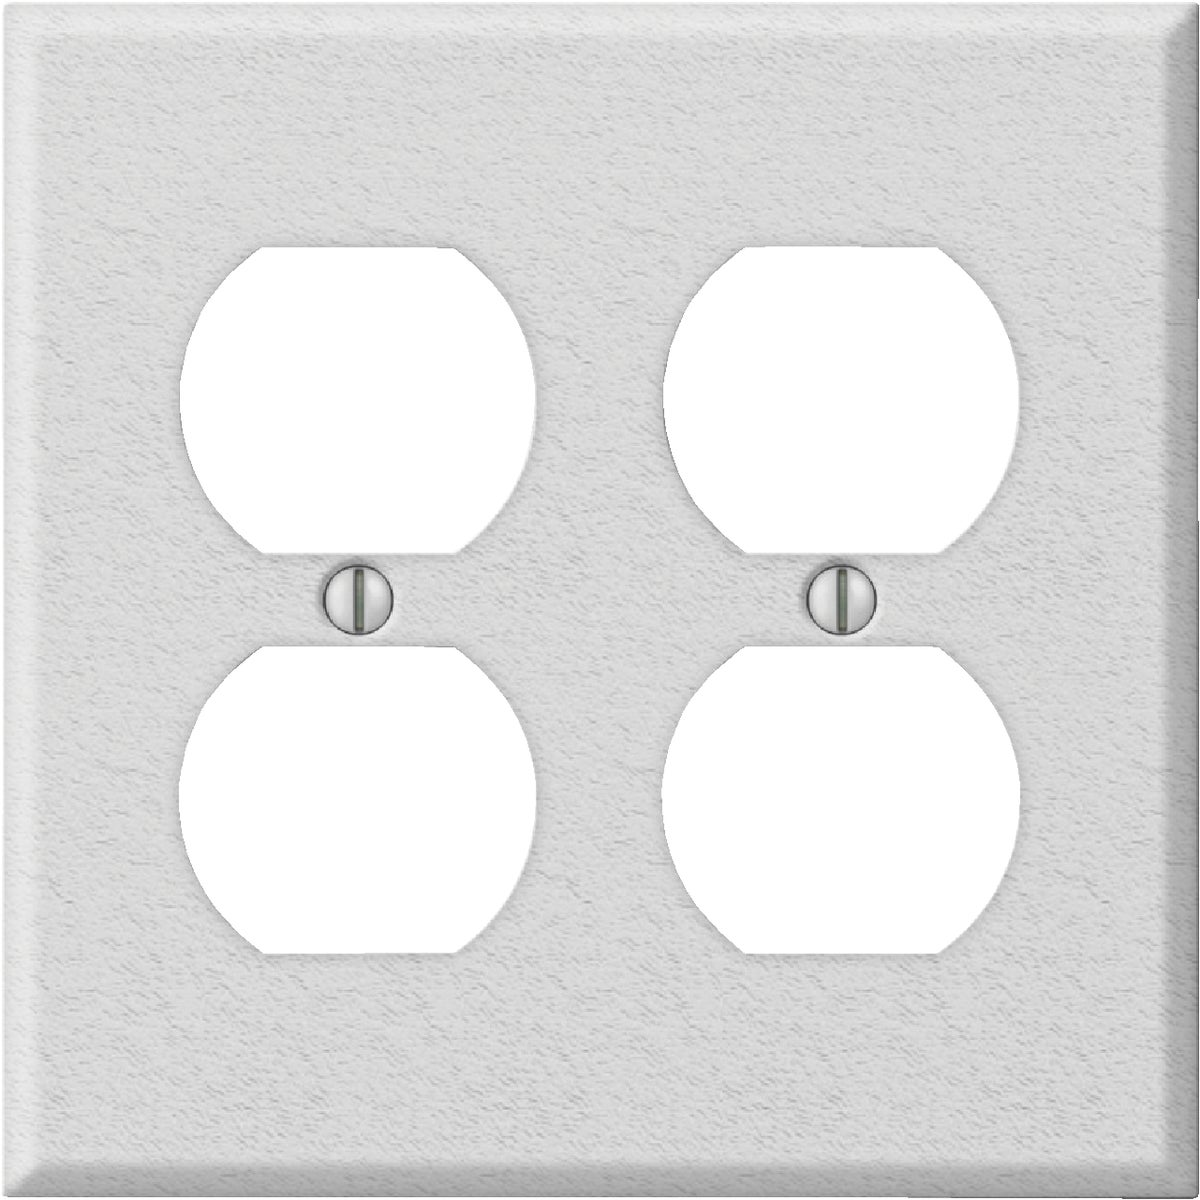 WHT DBL OUTLT WALL PLATE - 8WK118 by Jackson Deerfield Mf